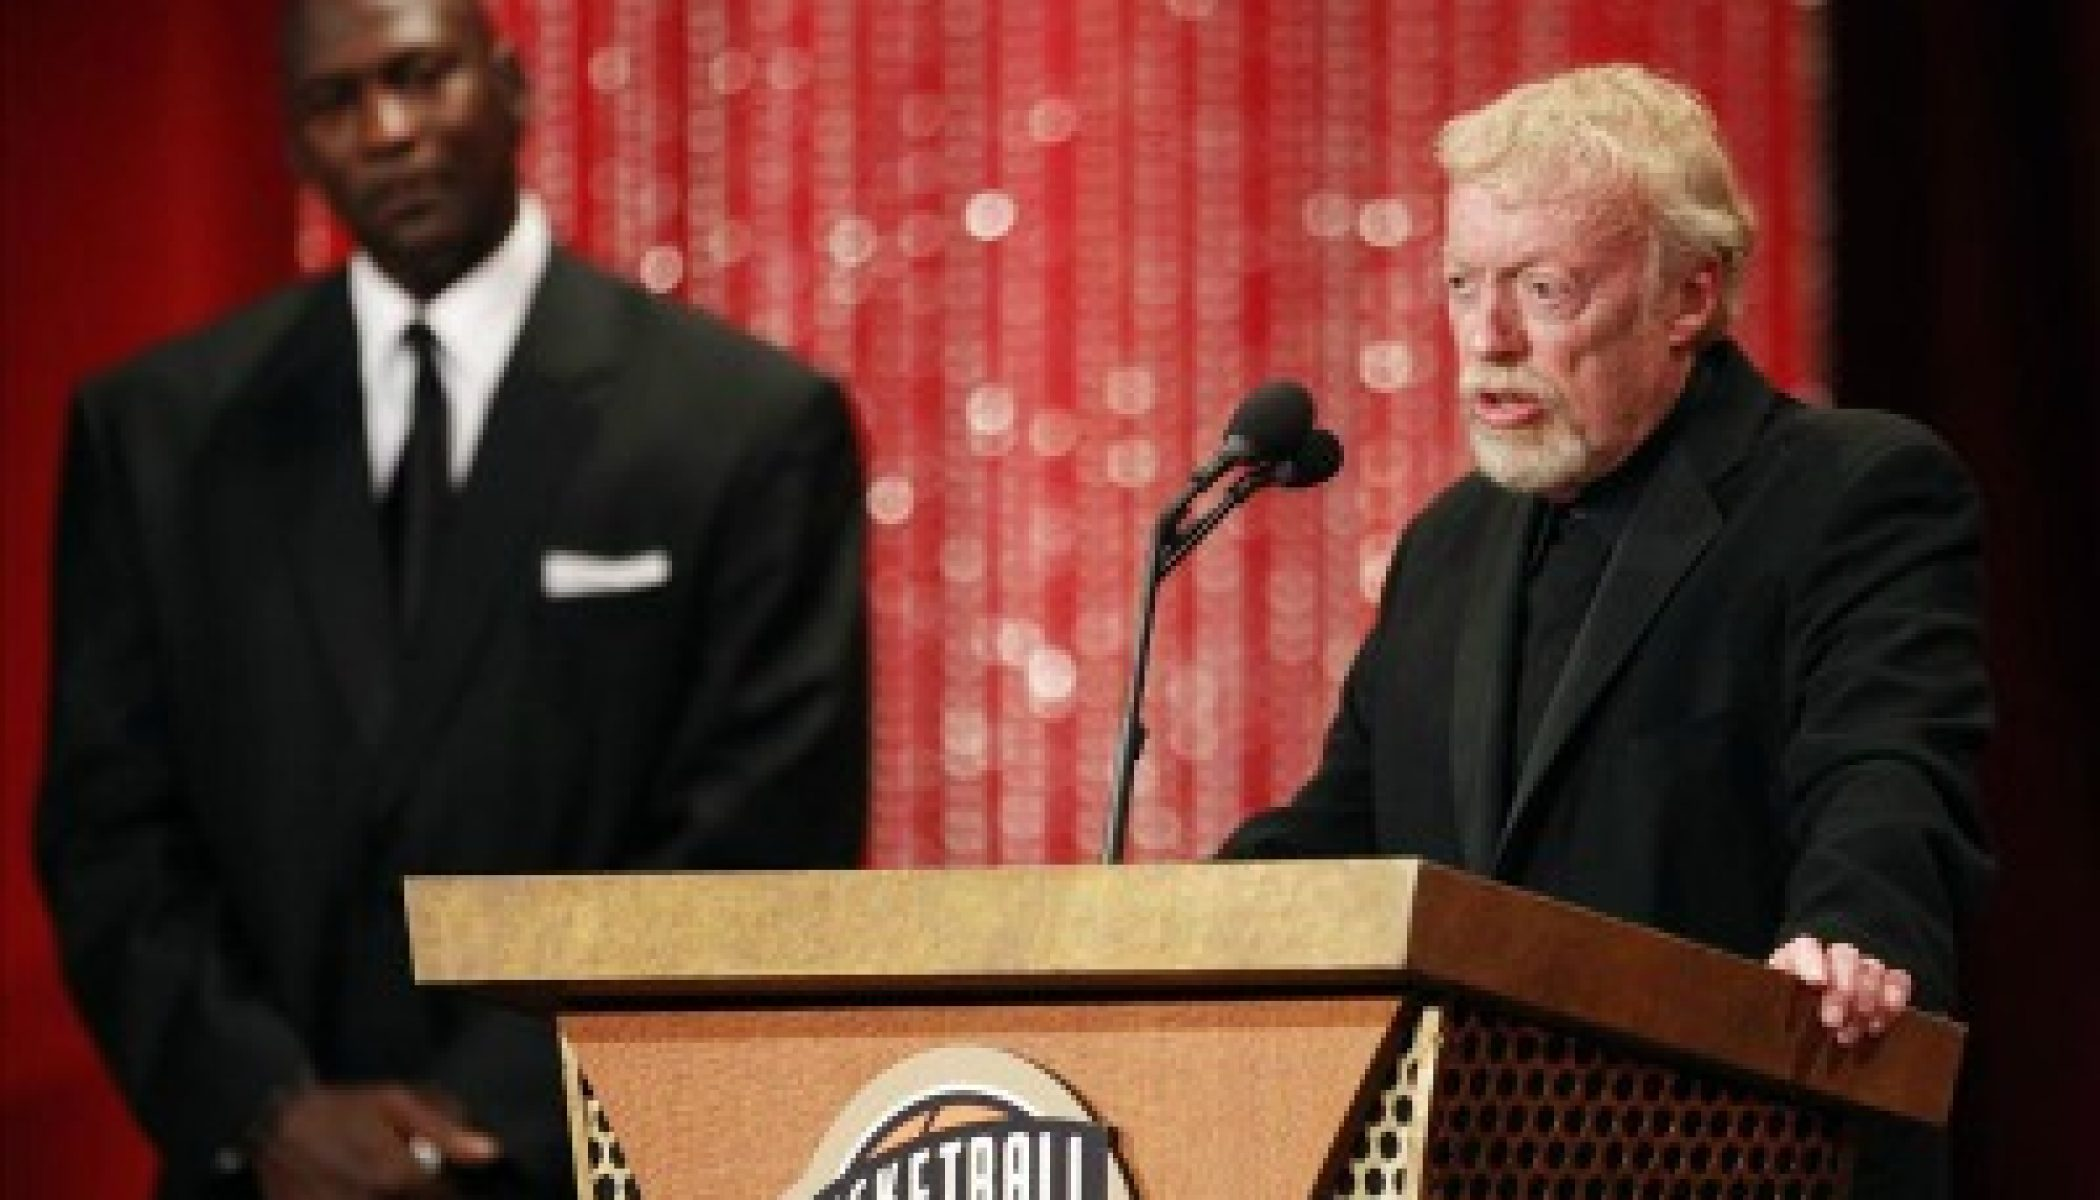 Loza de barro Cuerpo Acercarse  NIKE appoints new Chairman as Phil Knight retires - iSportConnect